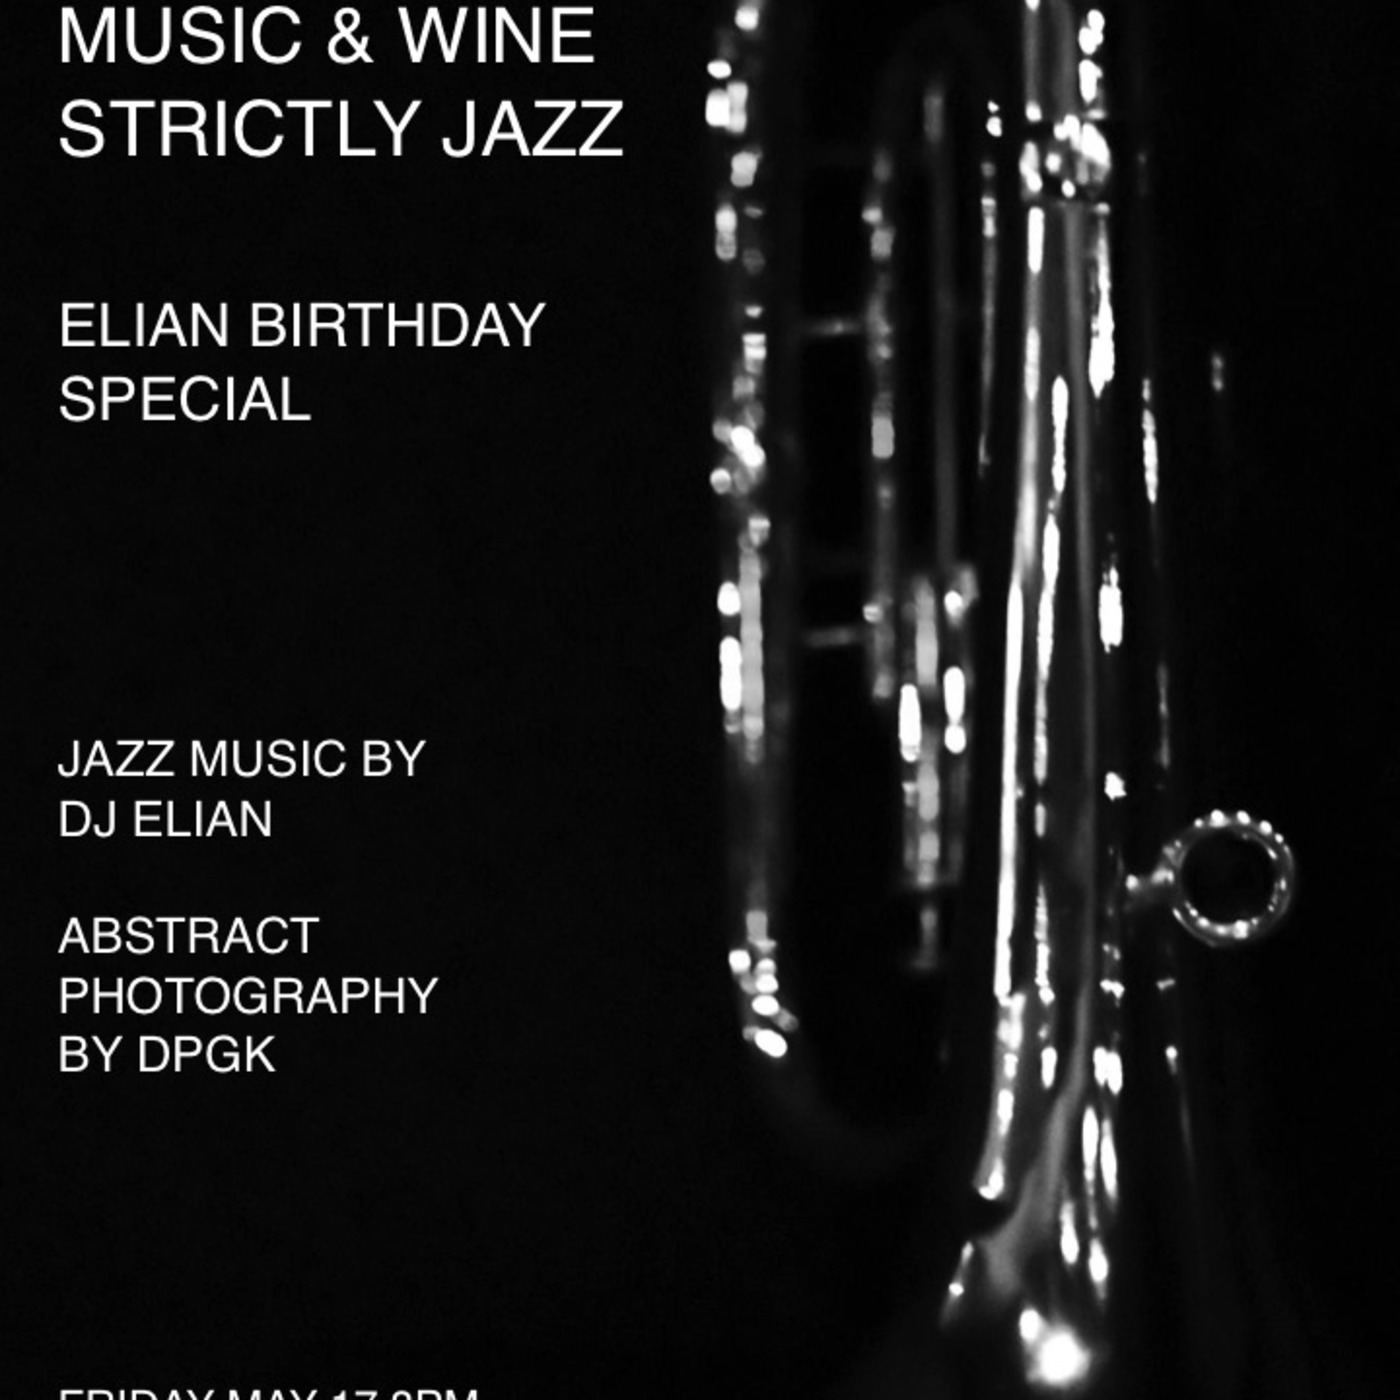 MUSIC AND WINE Strictly Jazz // Elian Birthday Special - May